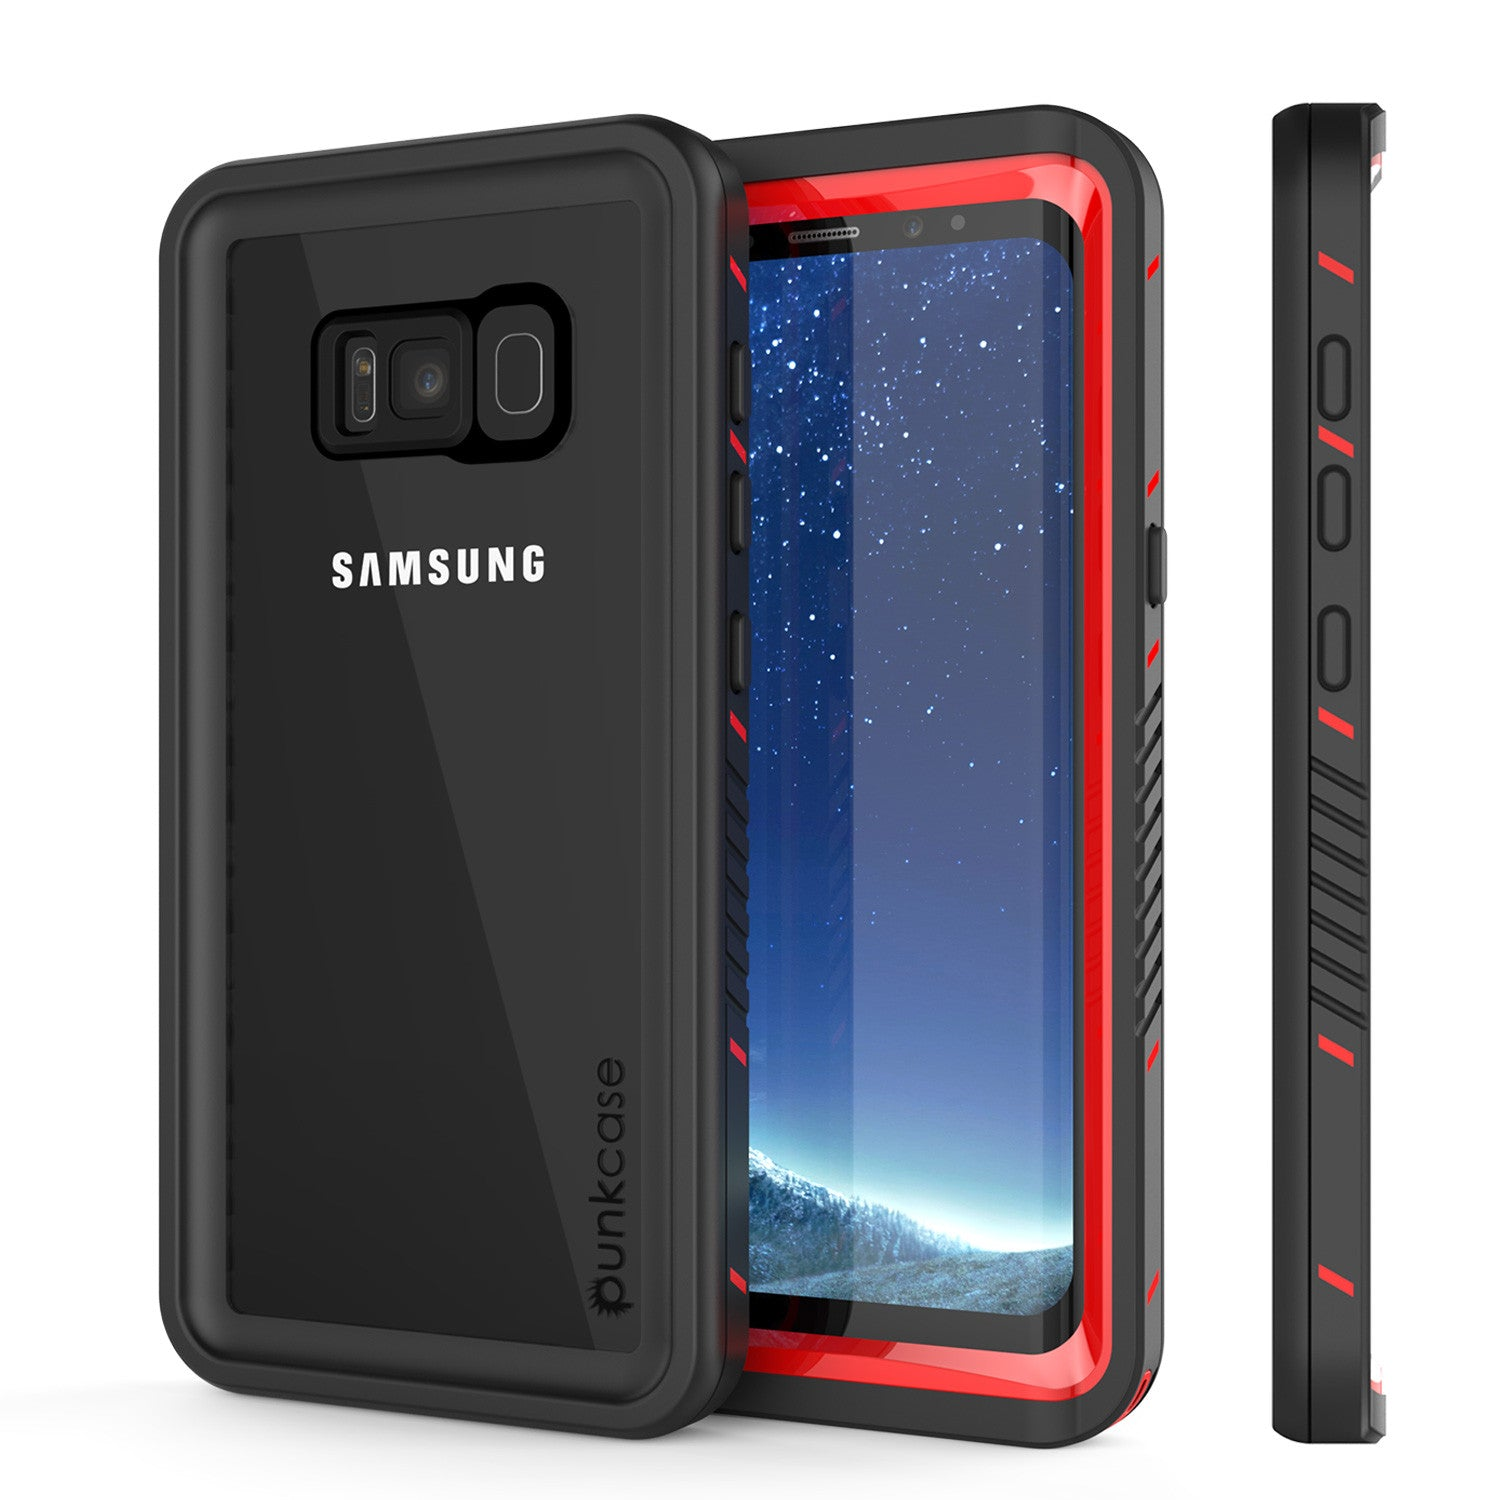 Galaxy S8 Waterproof Case, Punkcase [Extreme Series] Slim Fit with Built In Screen Protector for Samsung Galaxy S8 [Red]